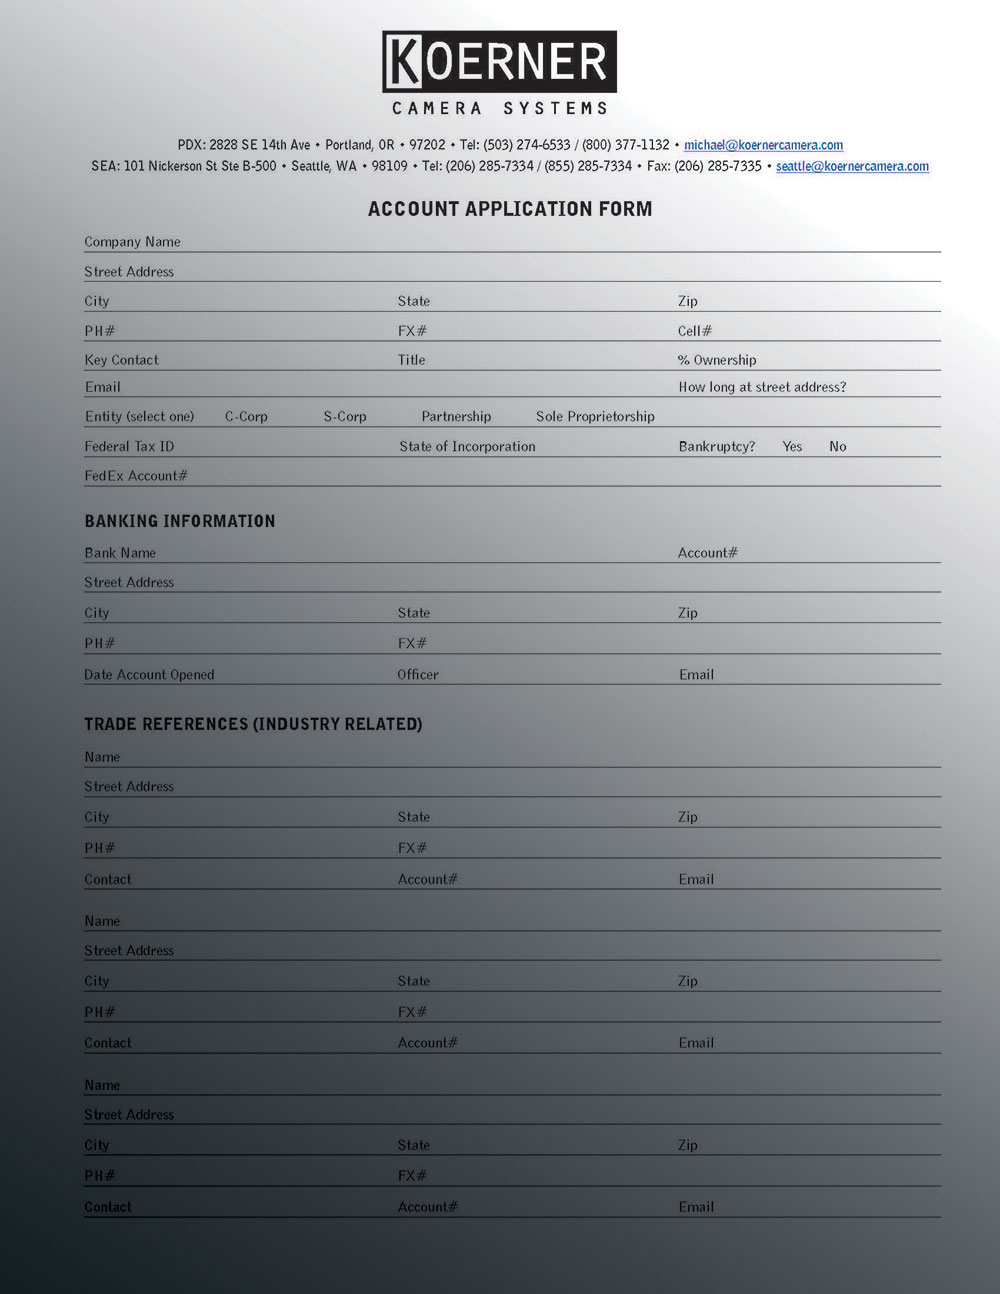 KCS NEW CLIENT ACCOUNT APPLICATION